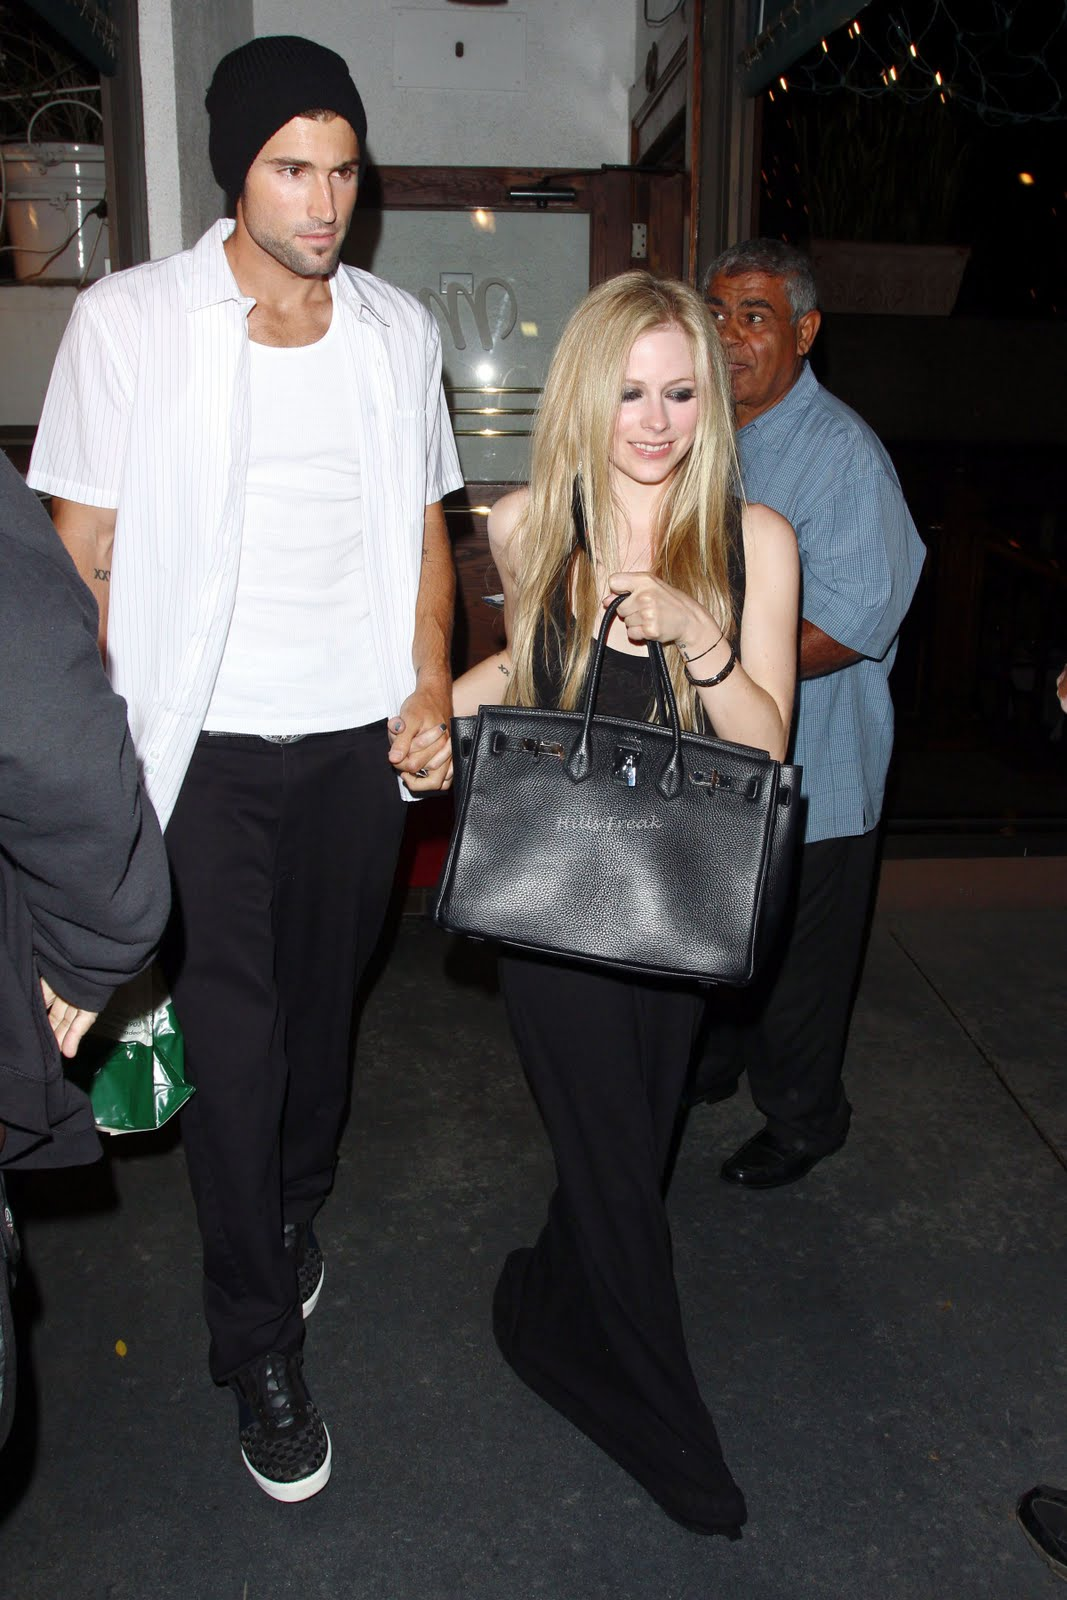 The best: is brody jenner dating avril lavigne 2011